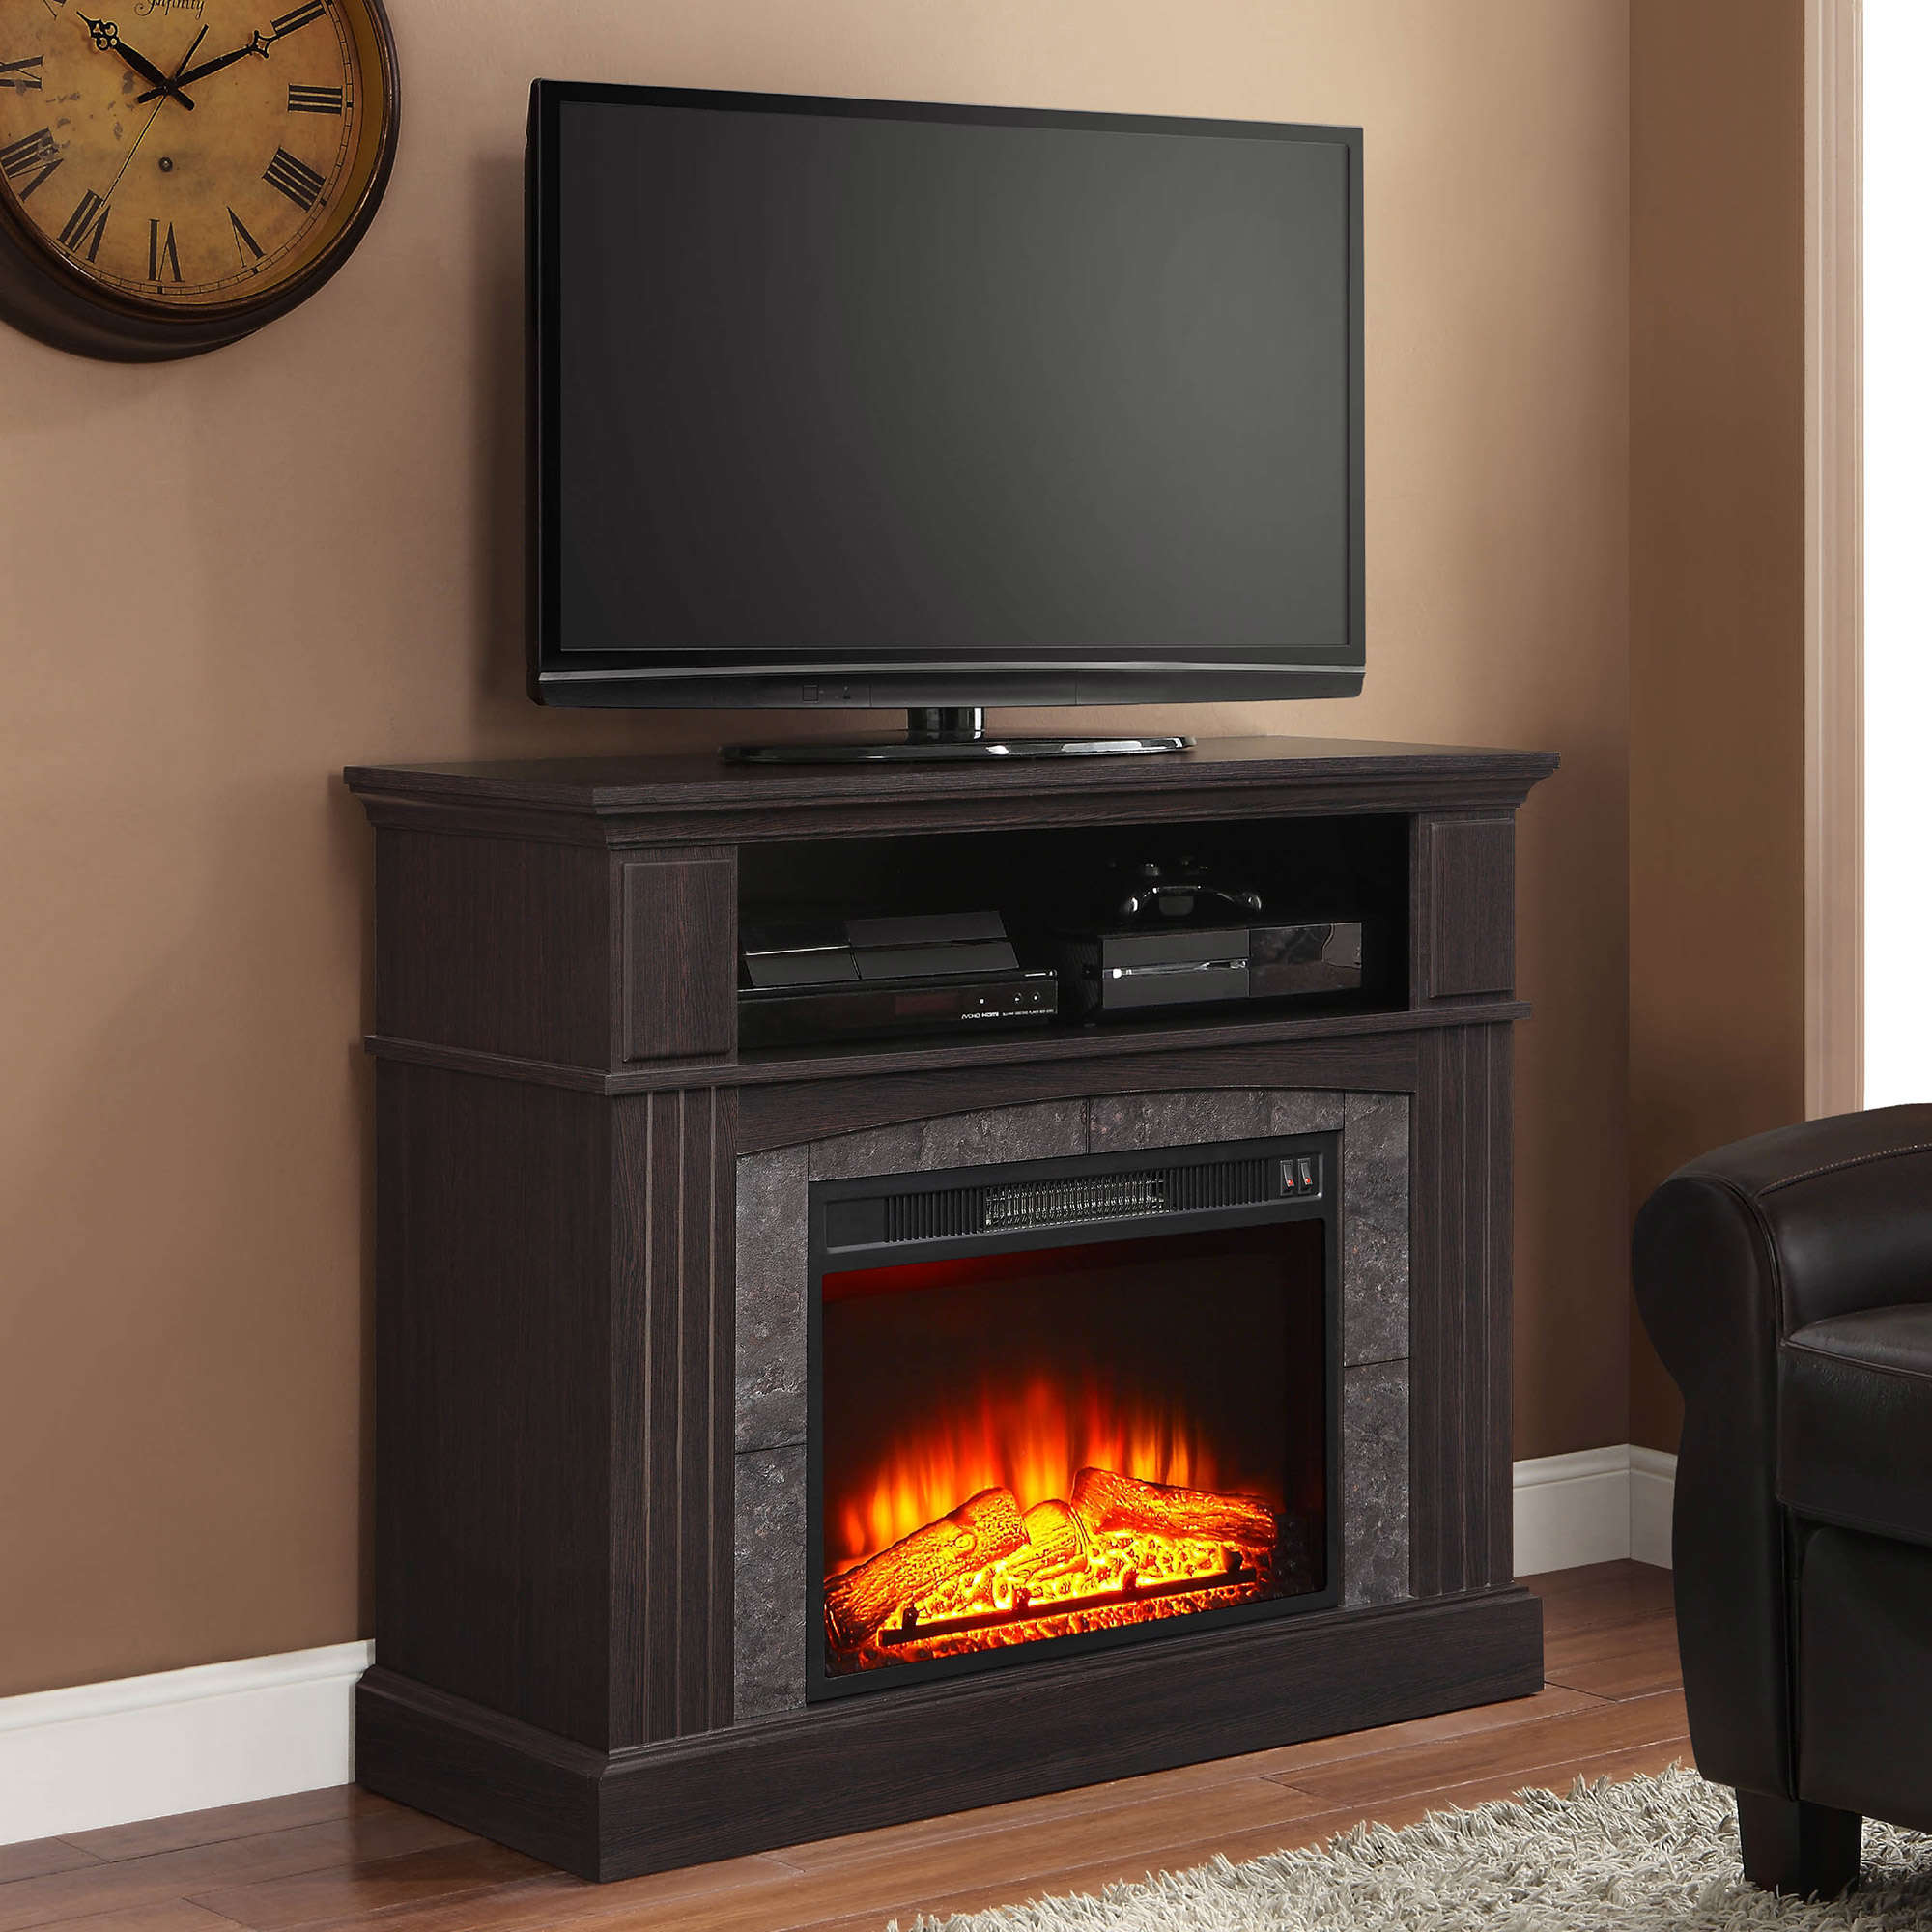 "Whalen Media Fireplace for Your Home, Television Stand fits TVs up to 50,"" Espresso Finish"